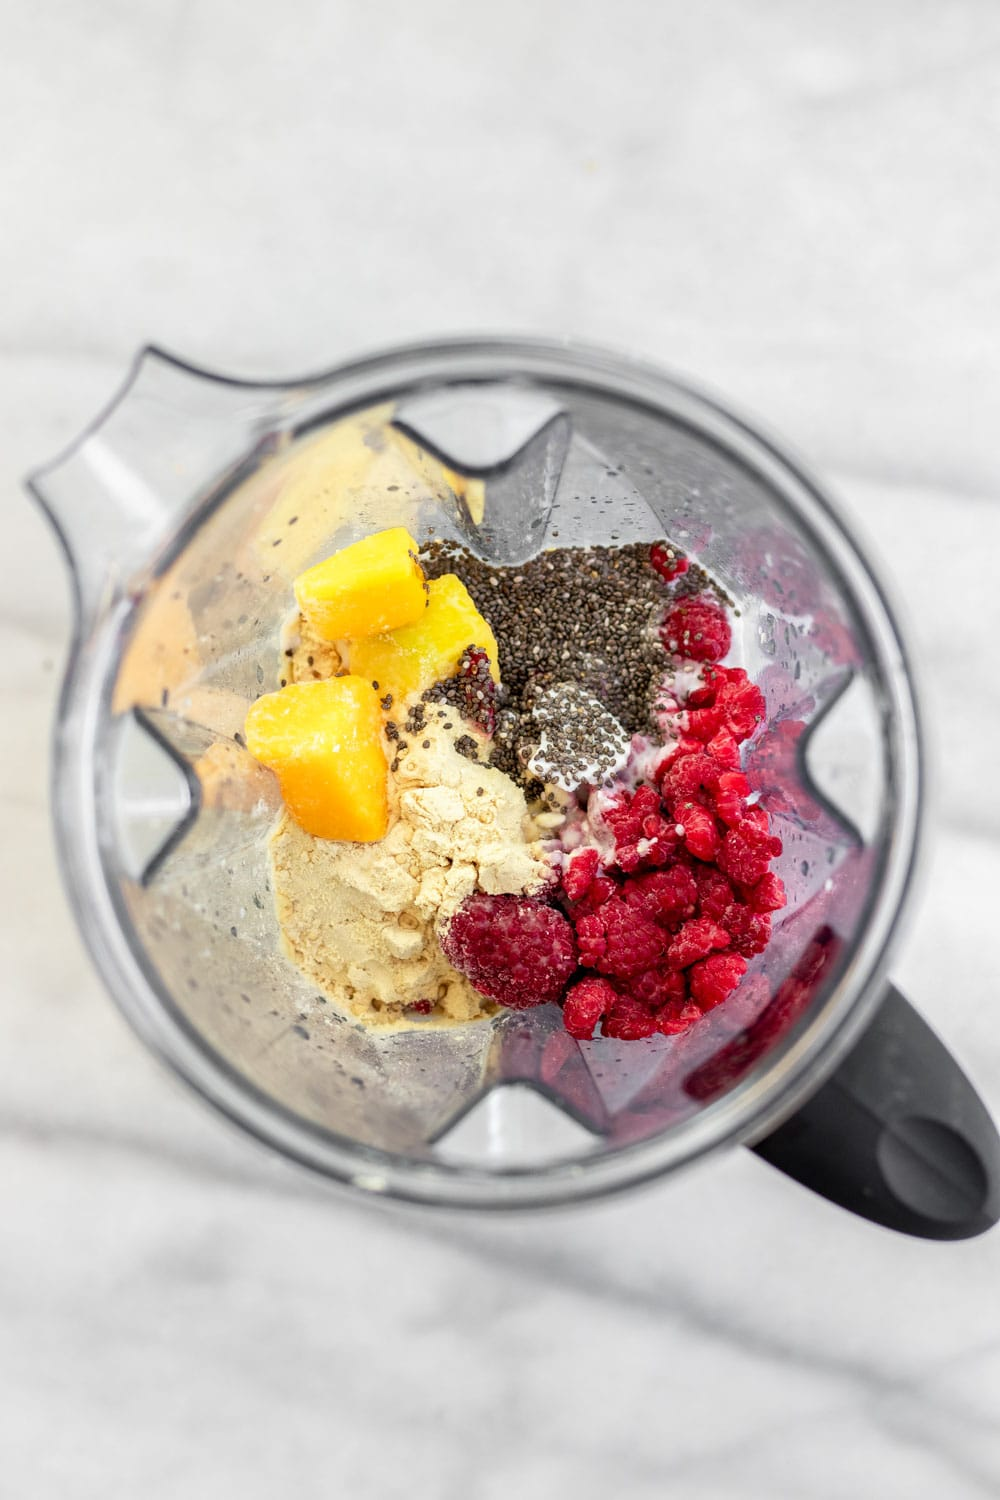 Ingredients for the smoothie in a blender.